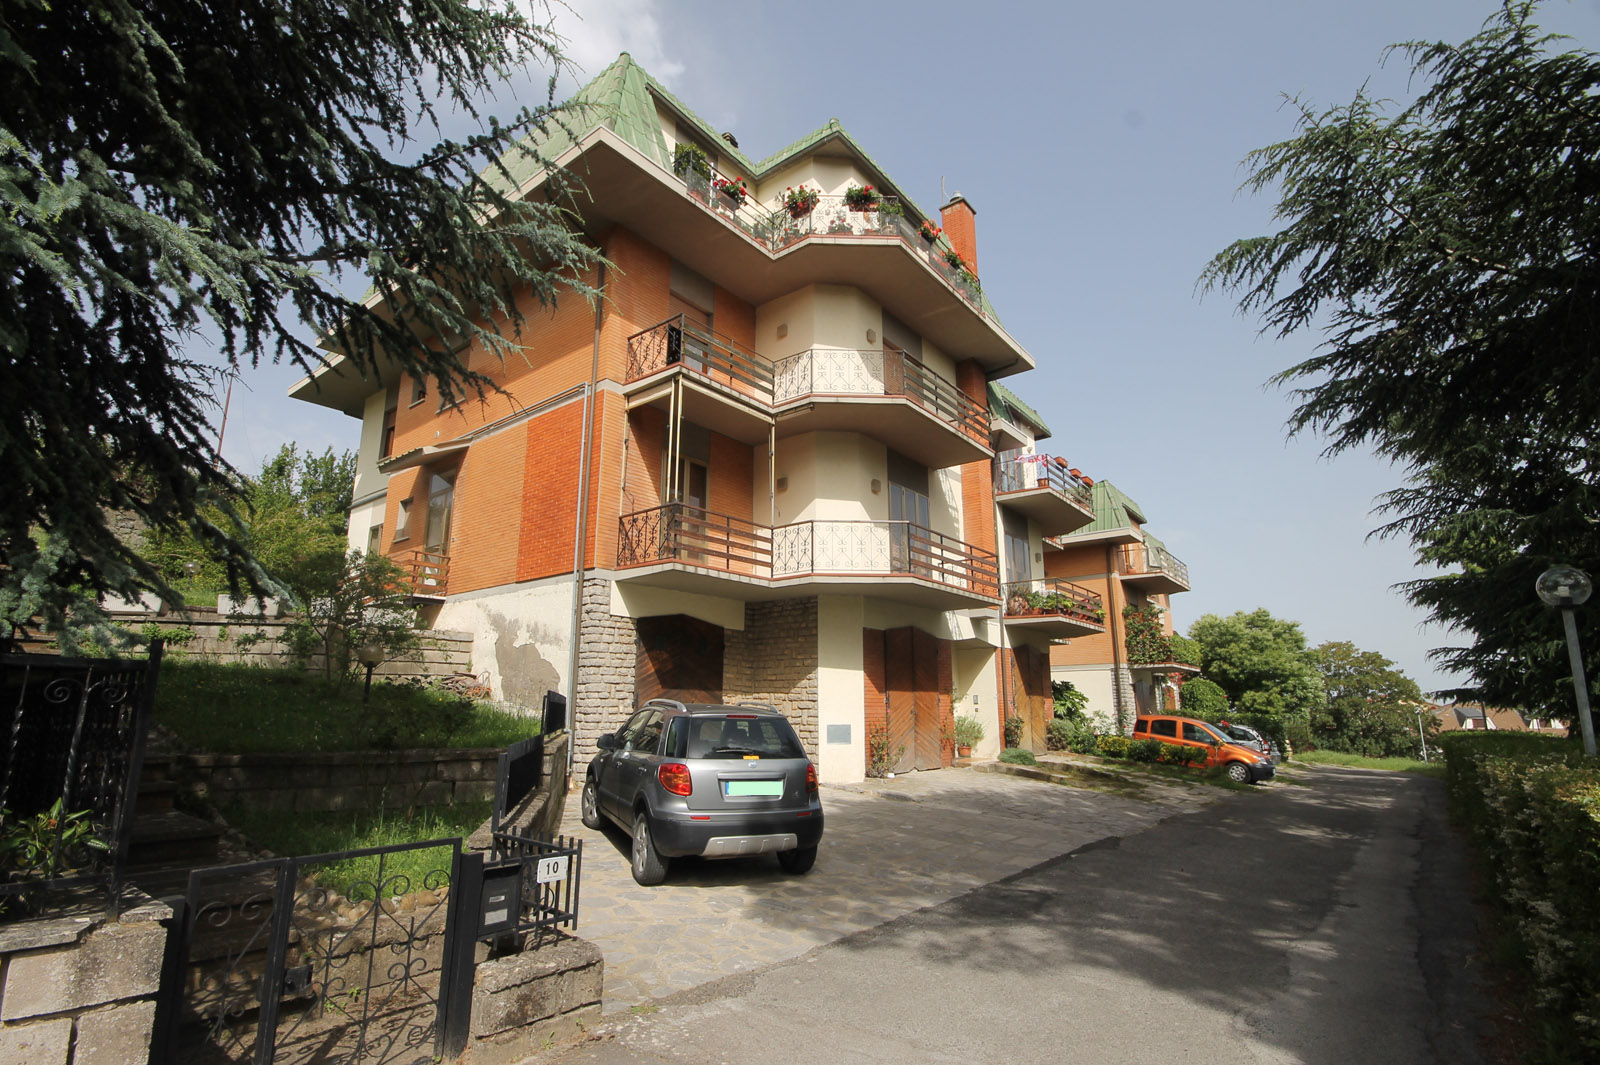 Castel del piano appartamento in vendita immobiliare 3 emme for Progettista del piano terra del garage